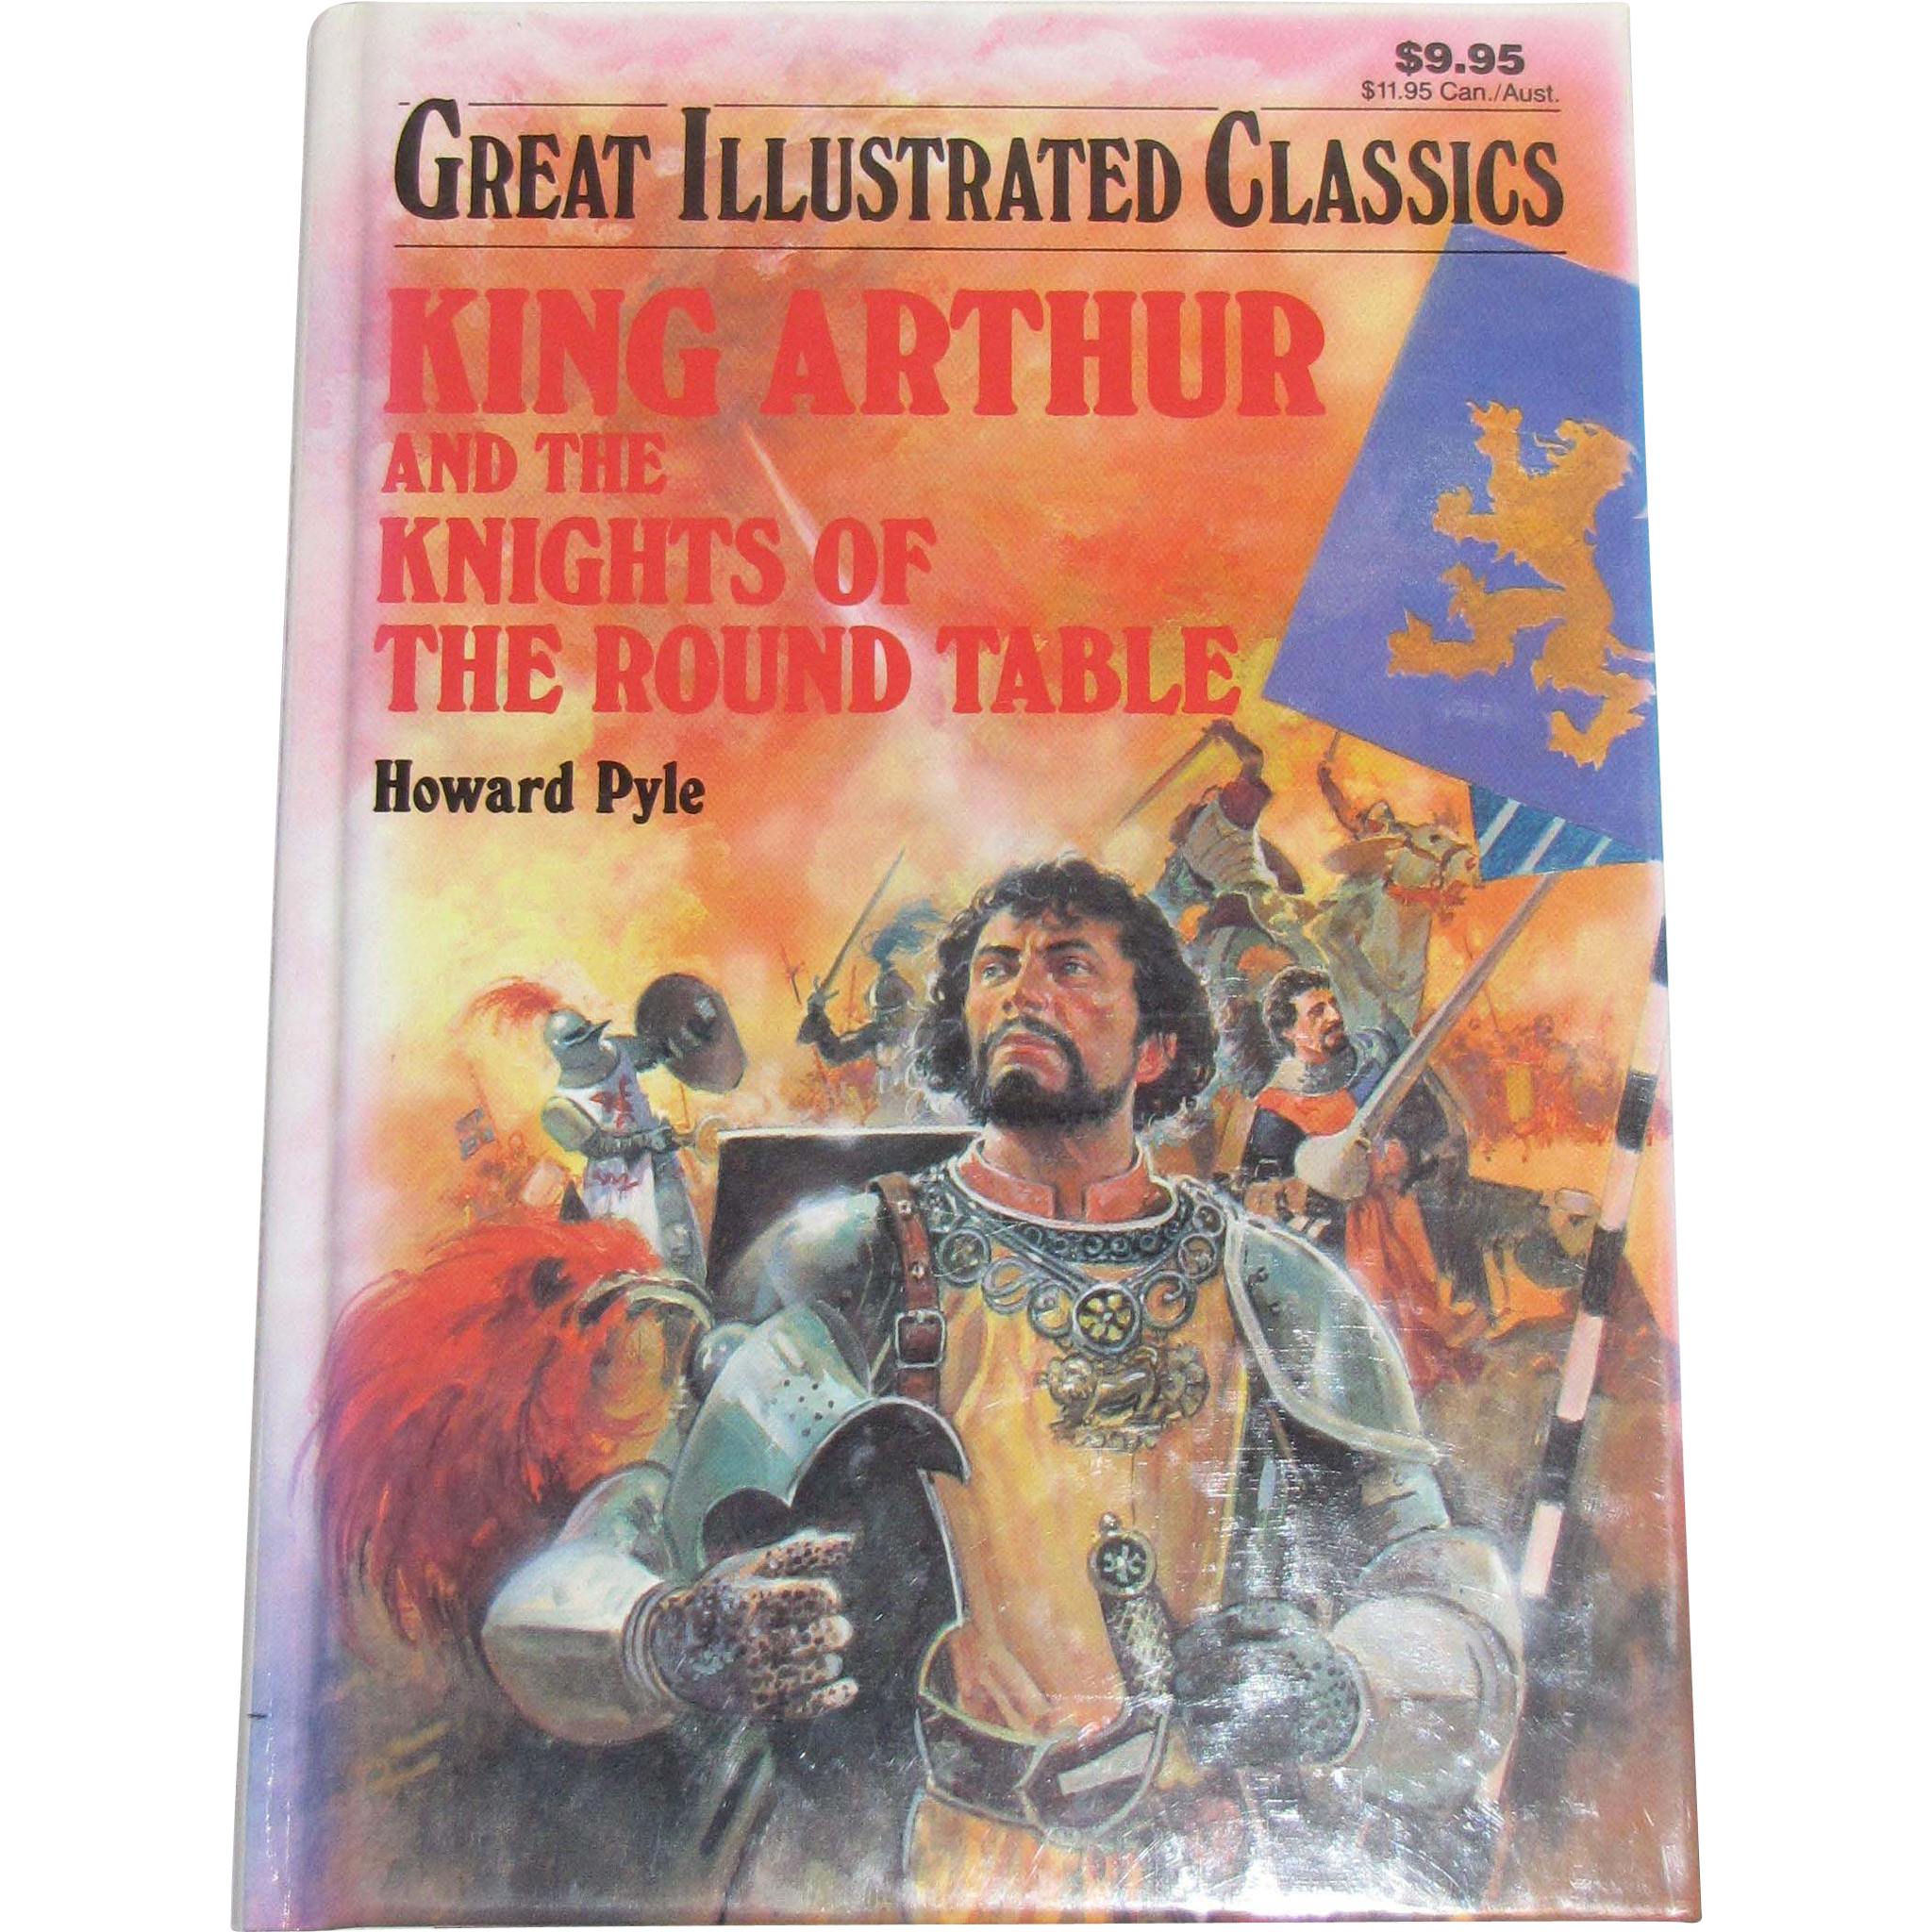 king arthur and the knights of the round table essay What qualities make arthur a great king  the knights of the round table renewed an oath that kept the  cedars, sr ed le morte d'arthur essay questions.